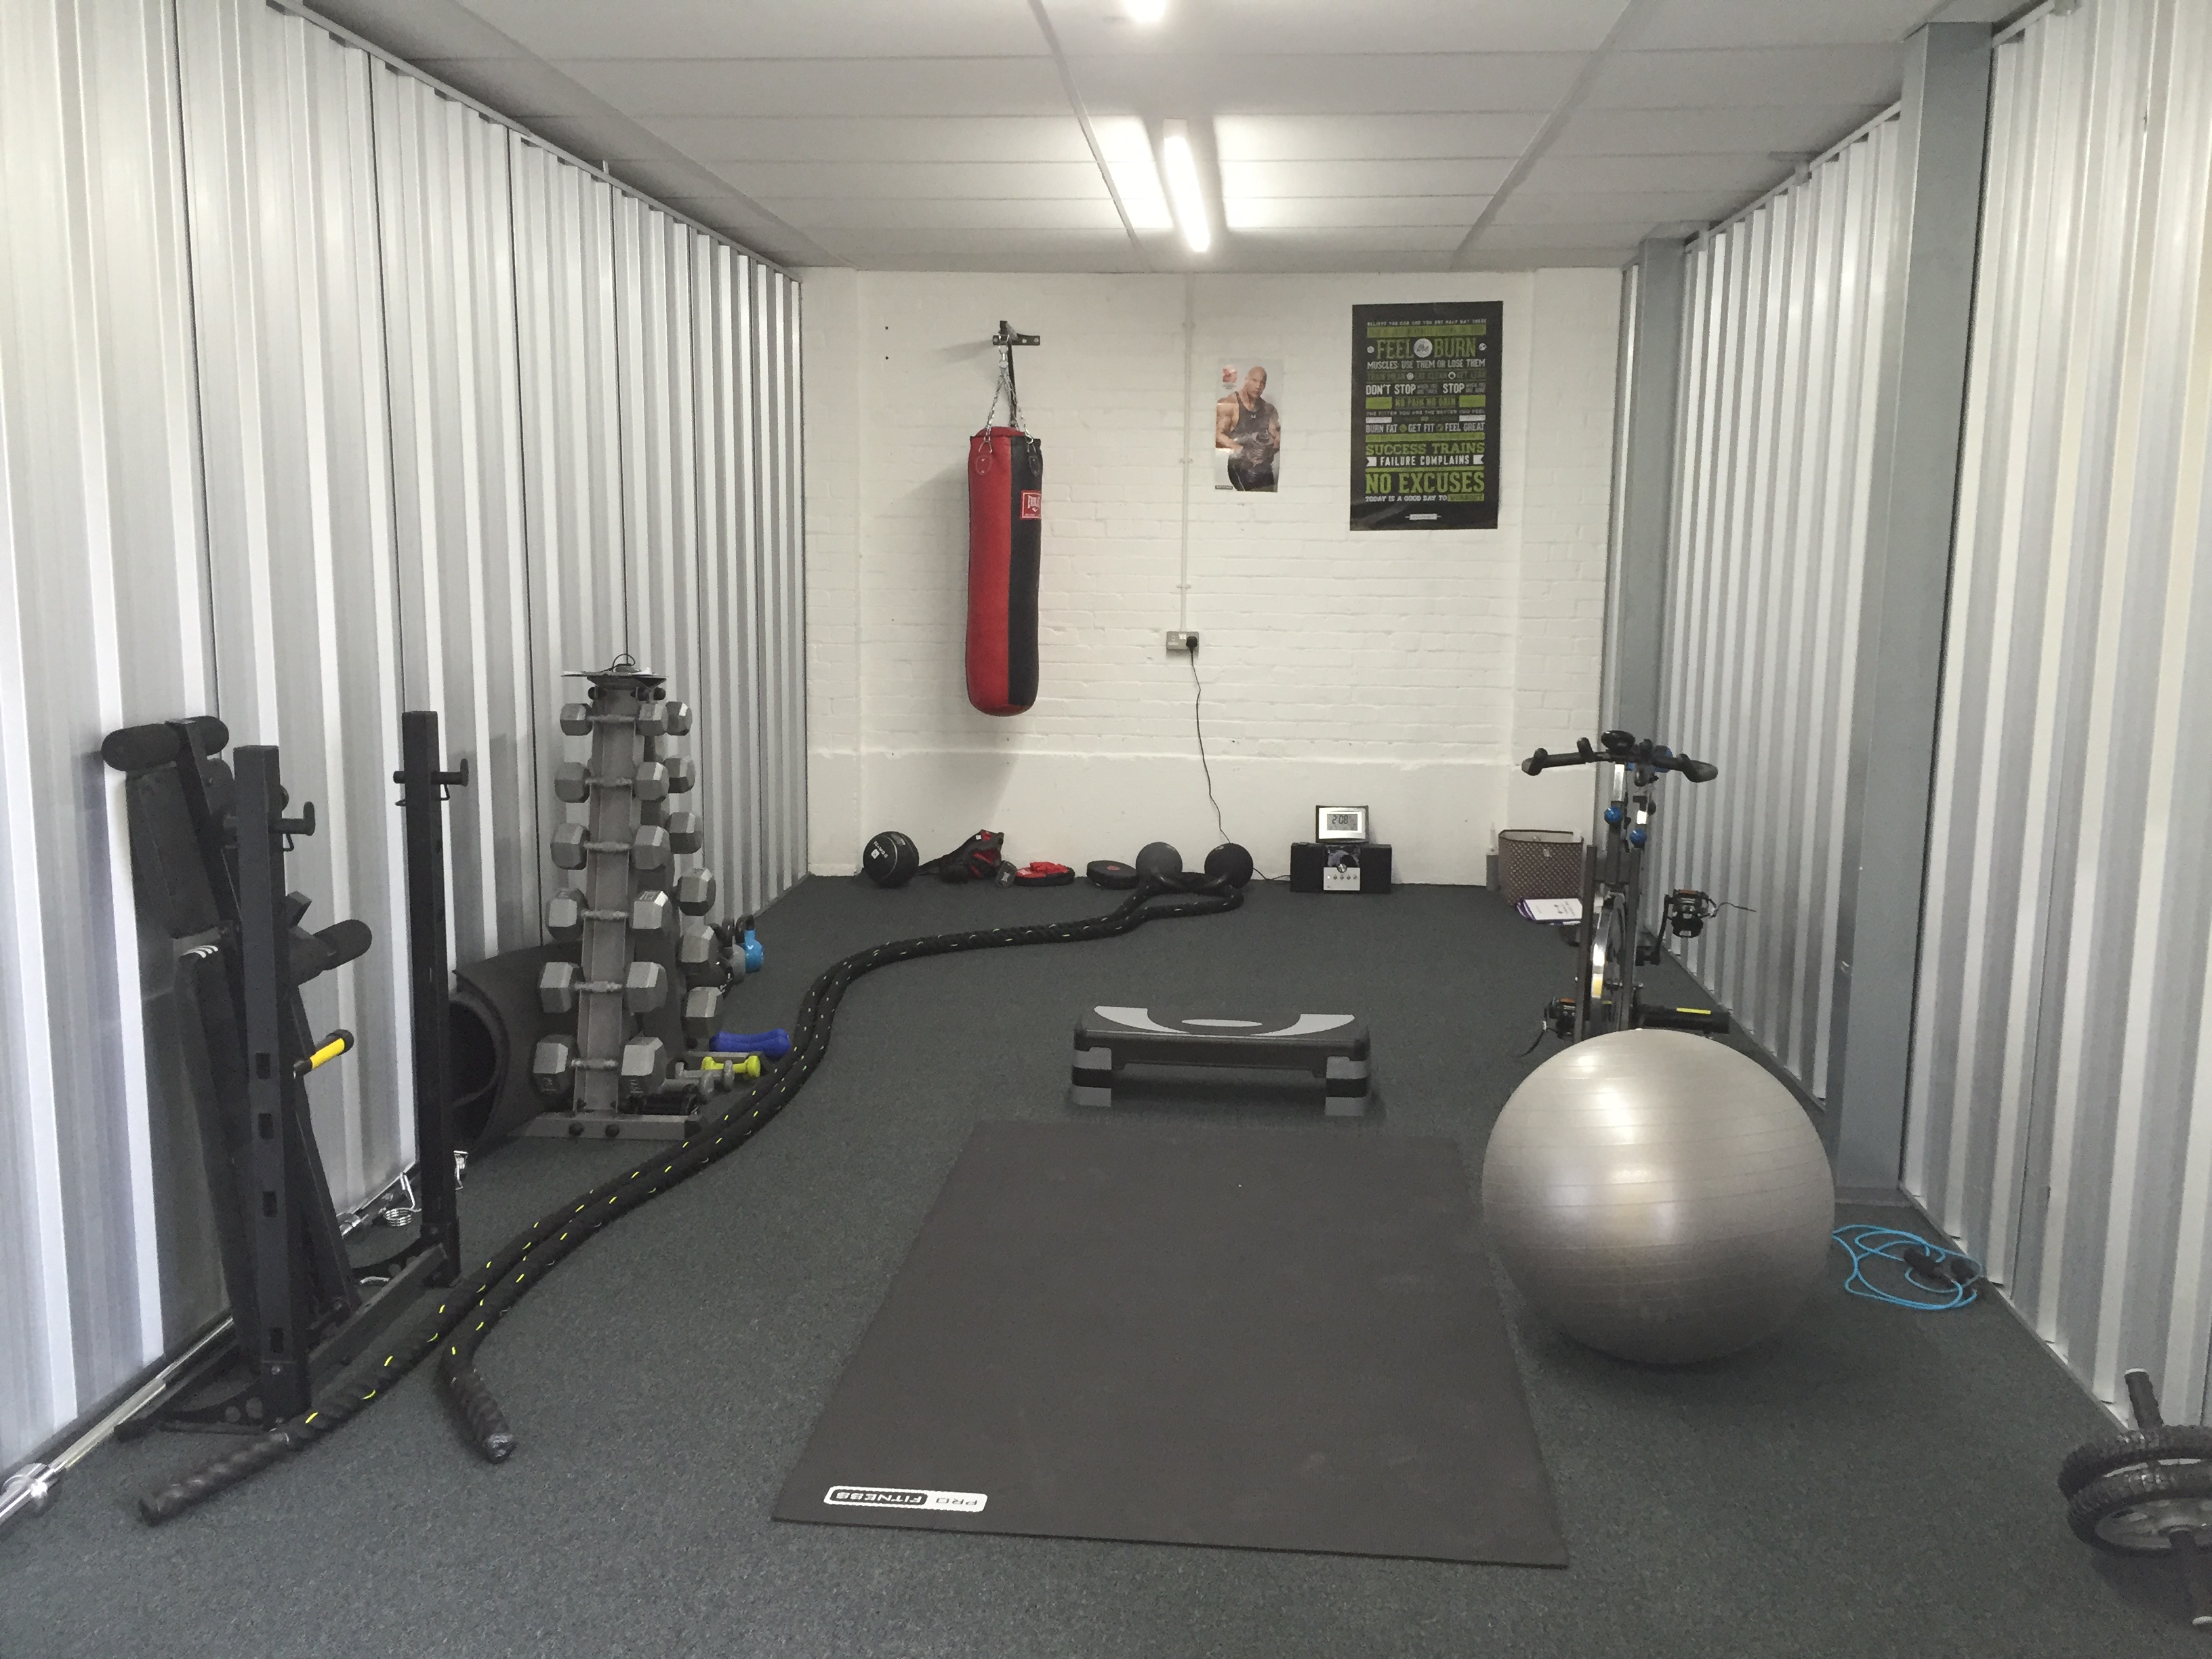 Superb Image Showing A Storage Unit Converted Into A Gym